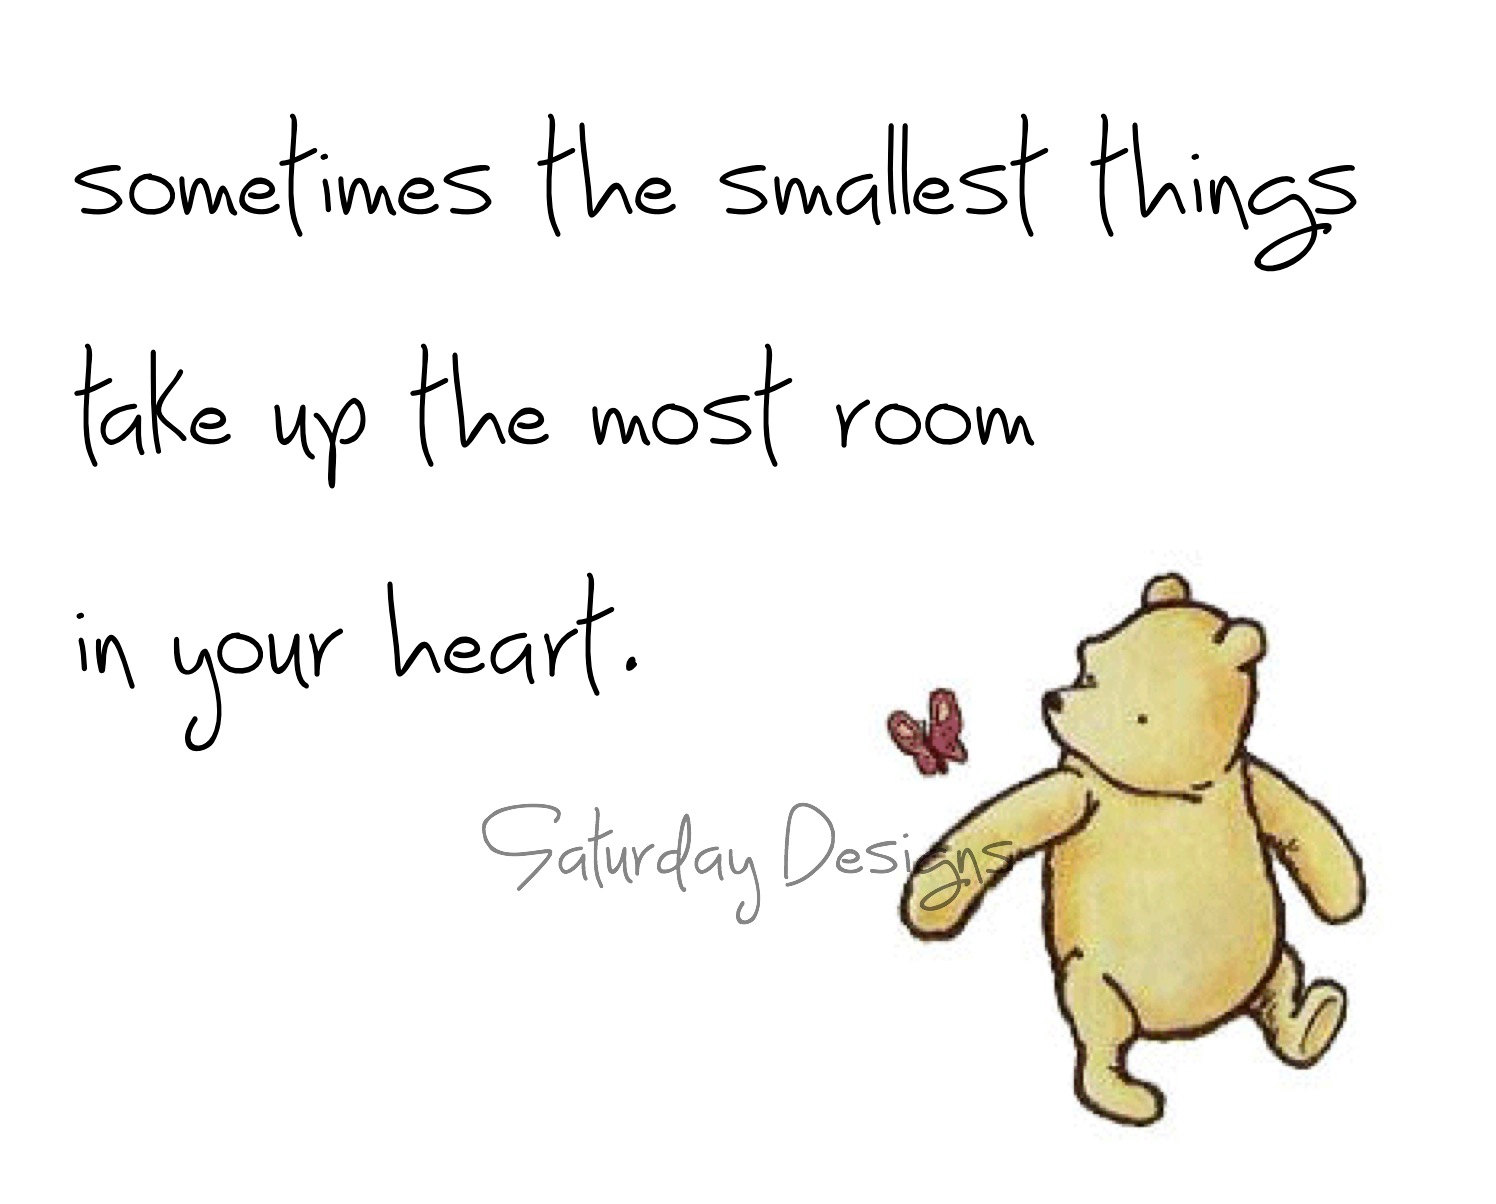 Quotes From Winnie The Pooh About Friendship Entrancing Winnie The Pooh Discoveredlonneke Looije On We Heart It